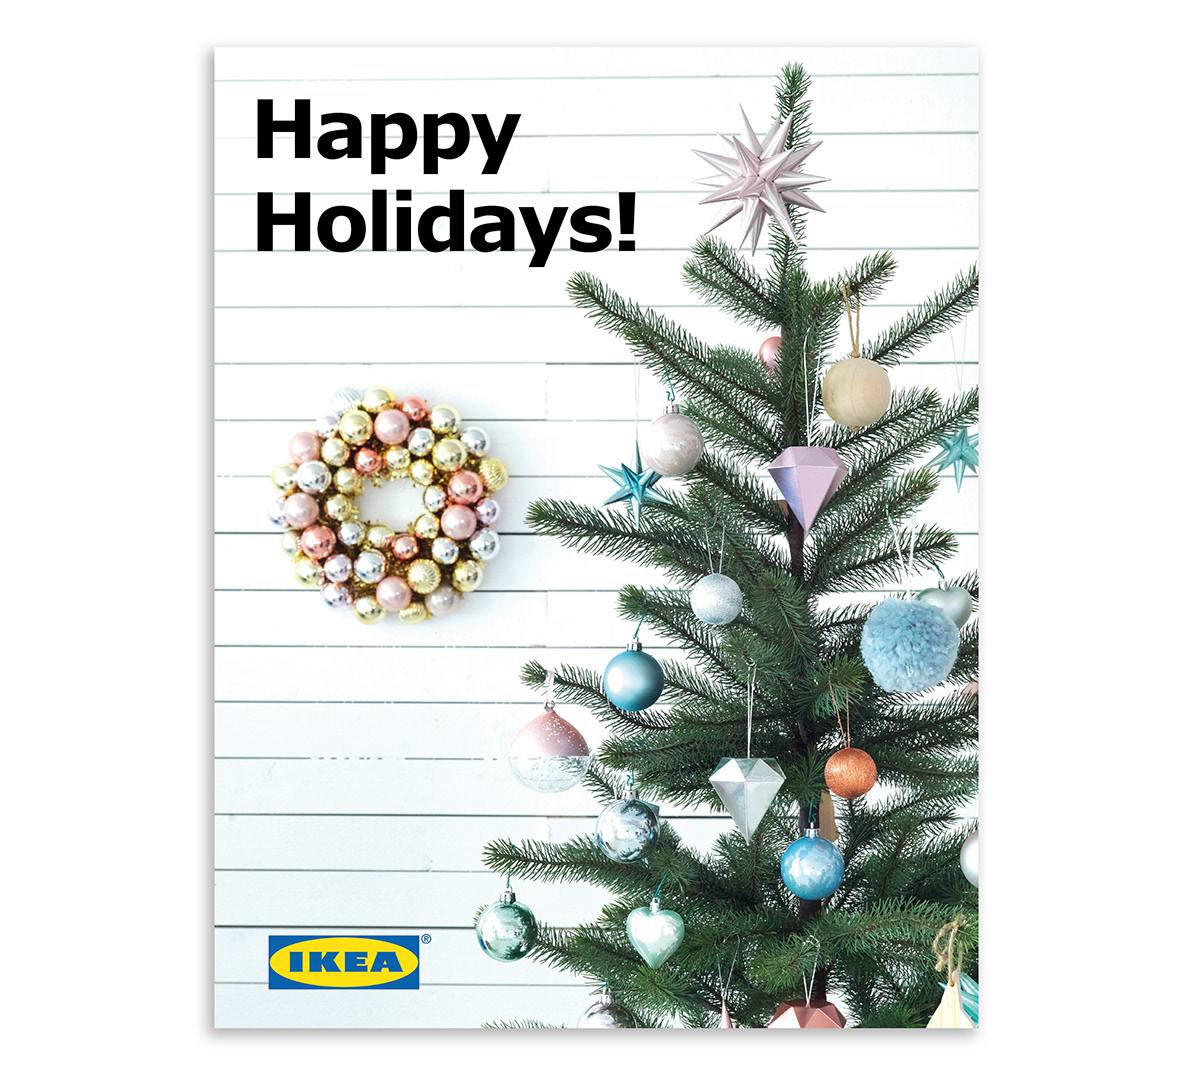 IKEA Digital & Print Advertisments on Behance